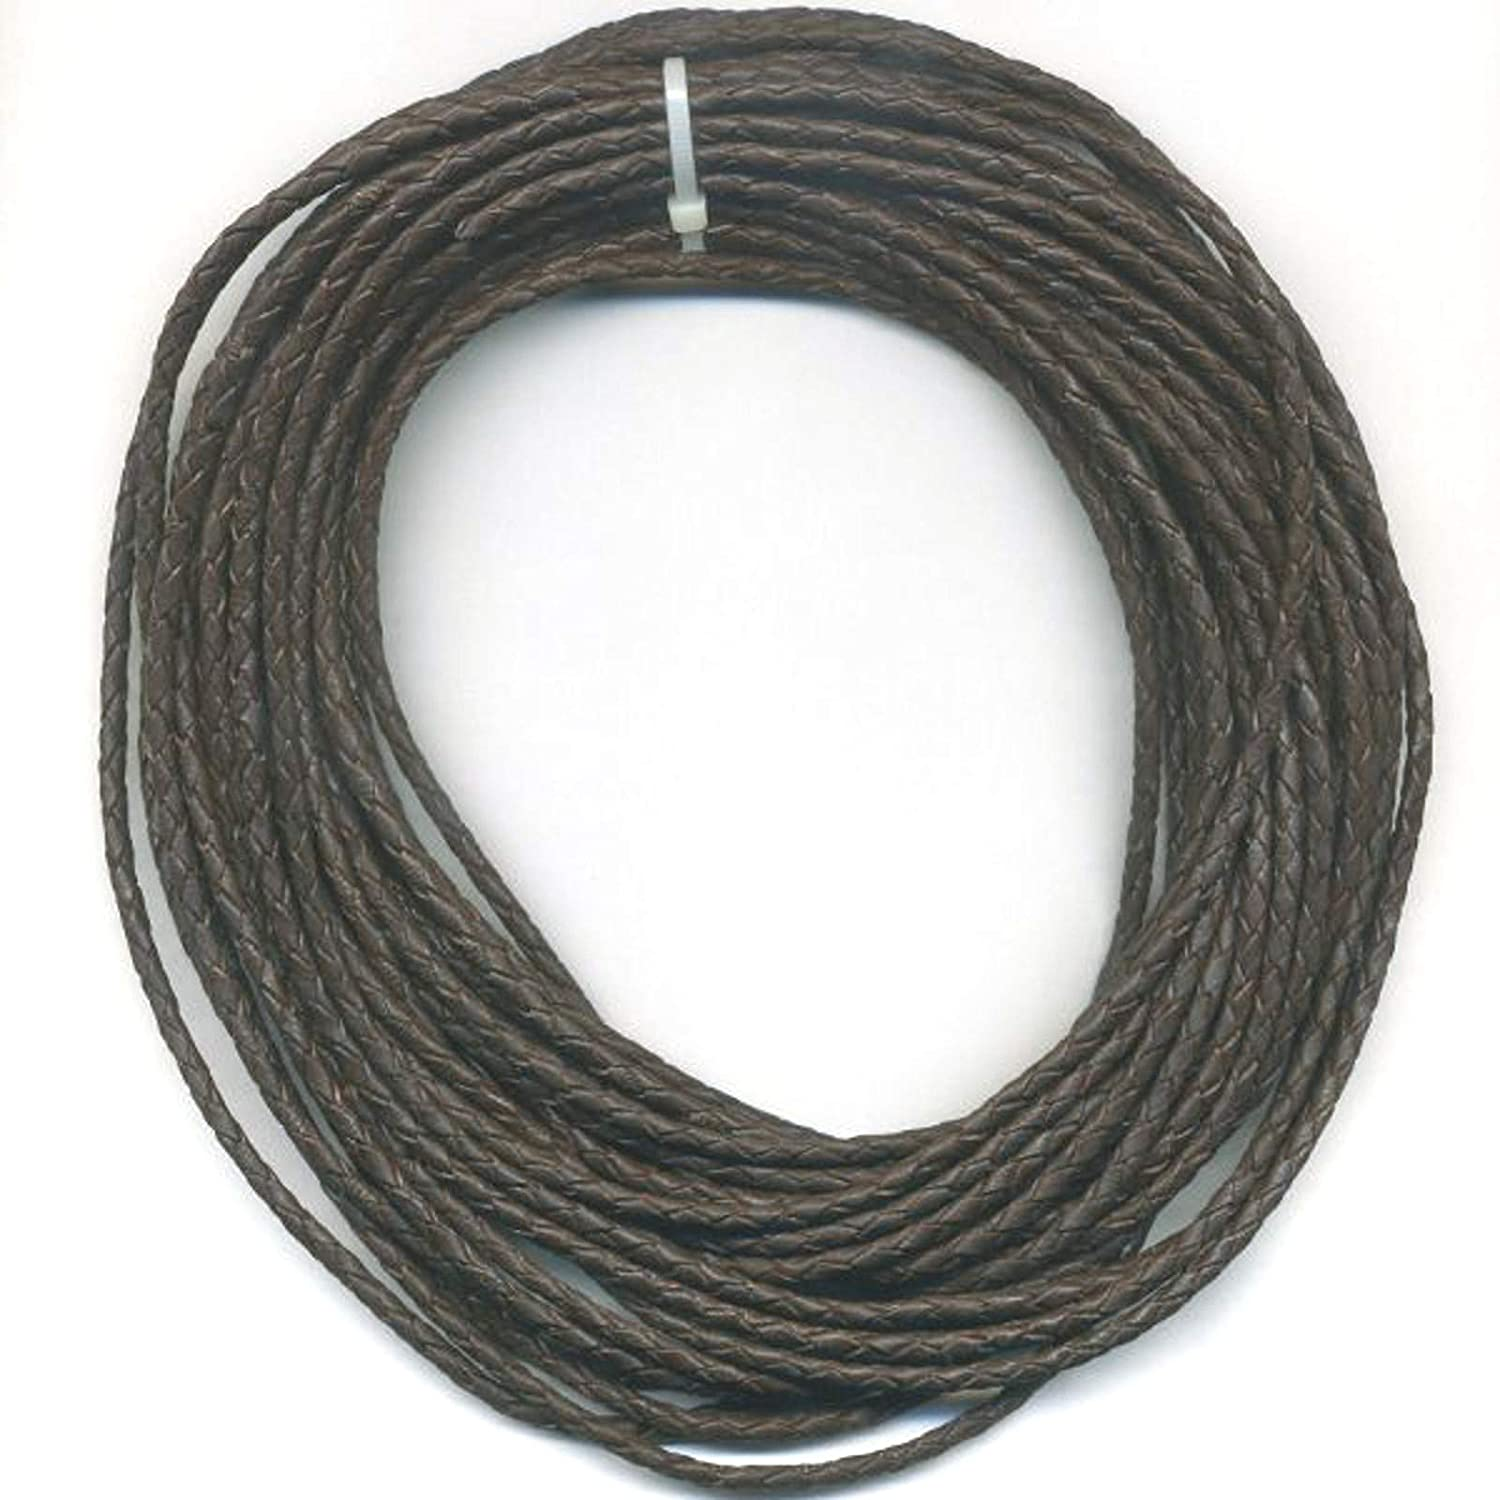 Bolo Braided Leather Cord 4MM Black Red White Colors 10 Meters